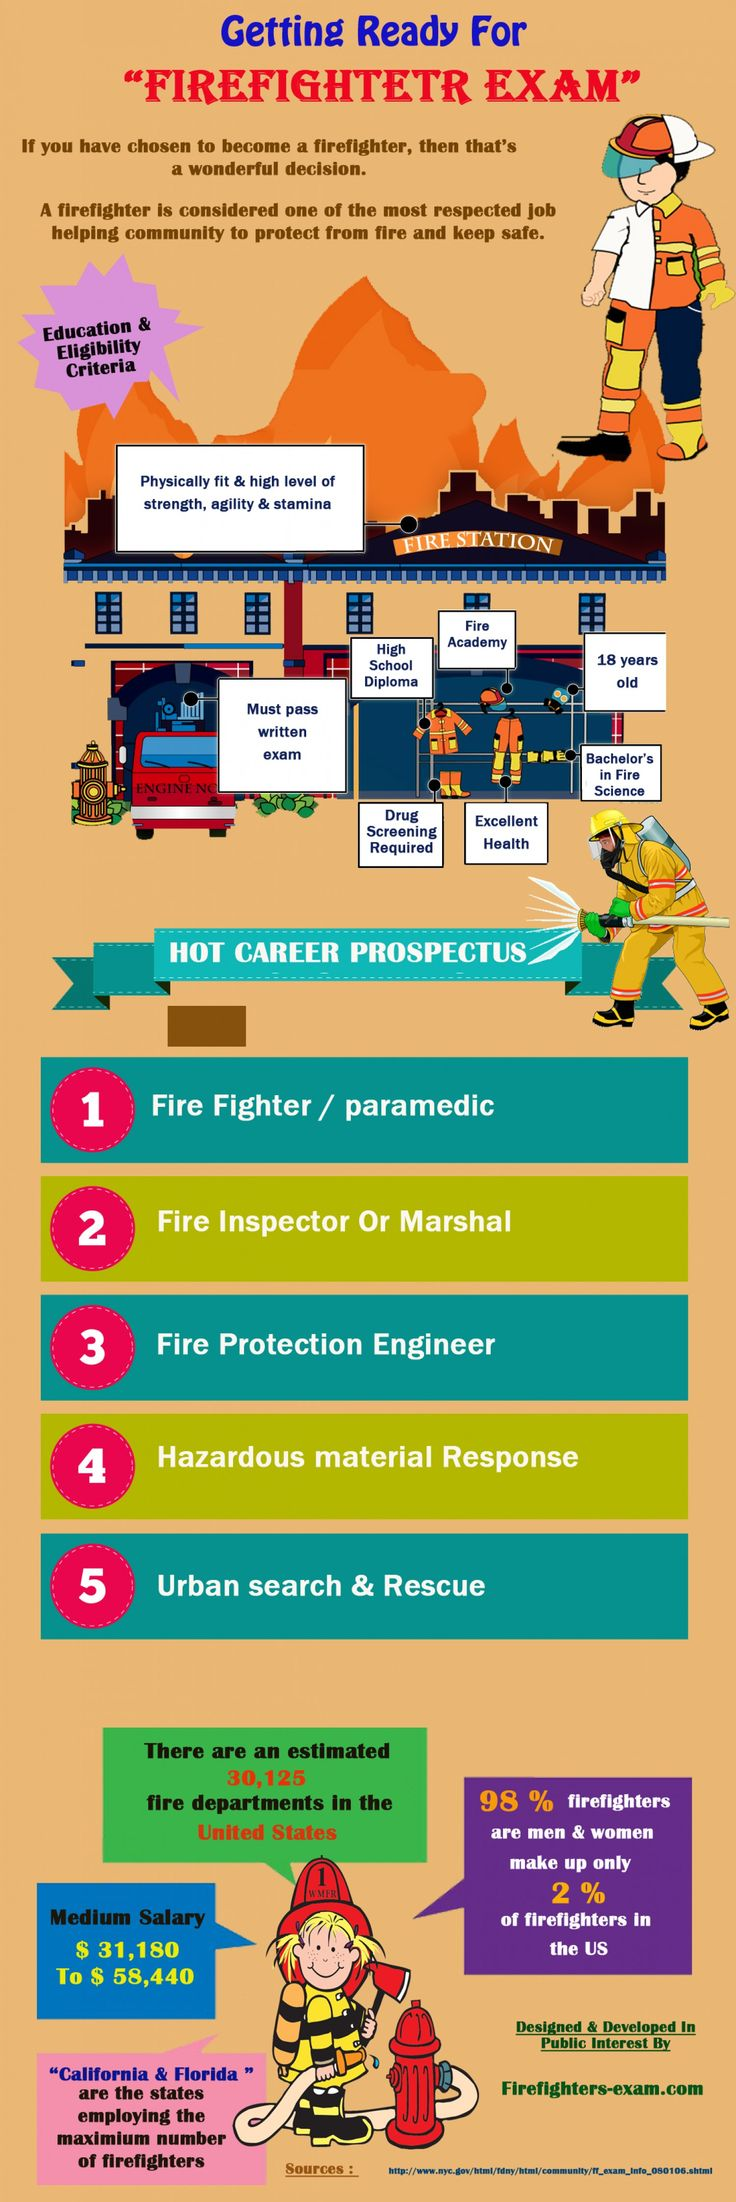 Getting Ready For The Firefighter Exam Infographic